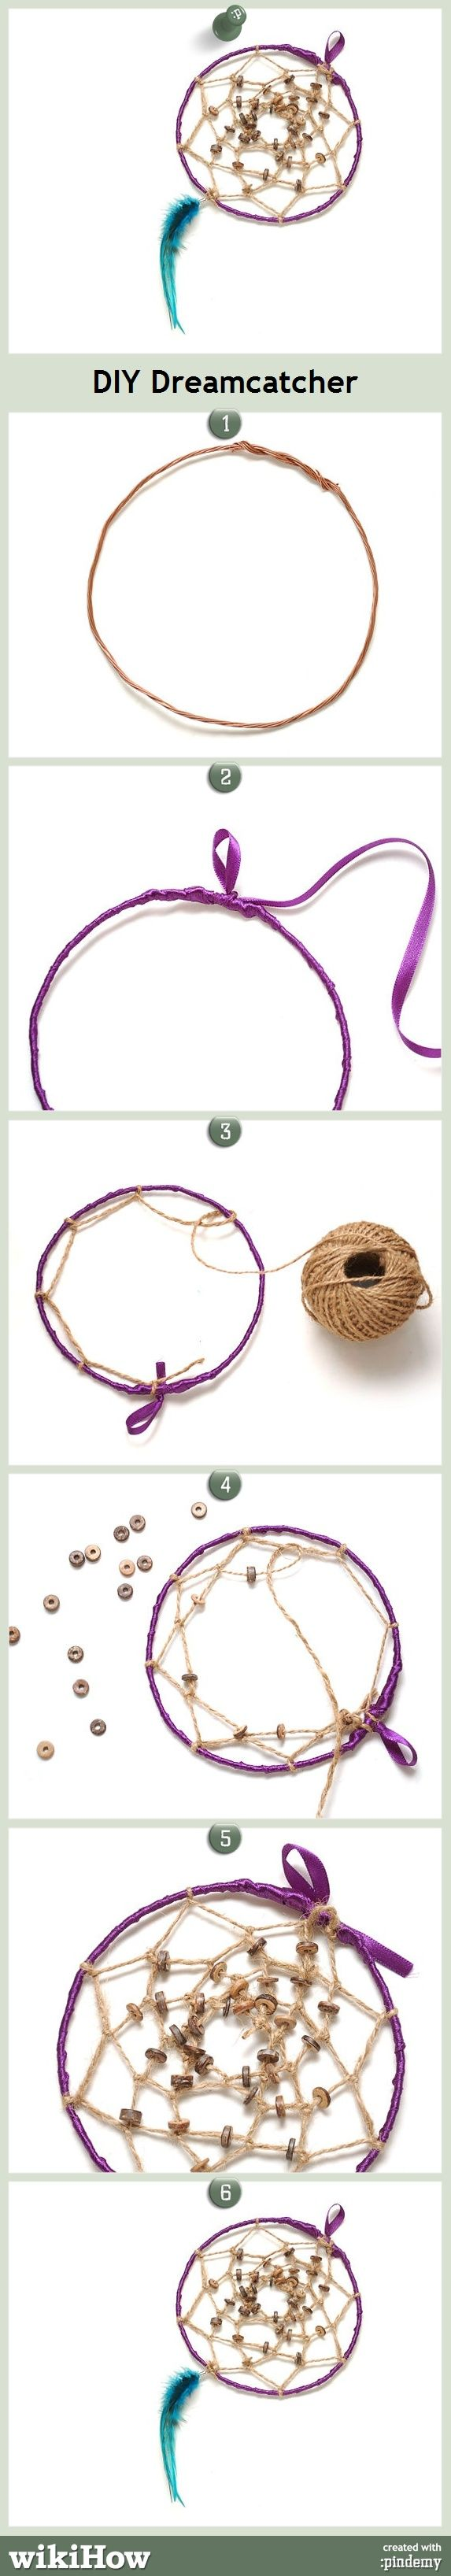 Instructions on how to make a dream catcher picture - Make A Dreamcatcher